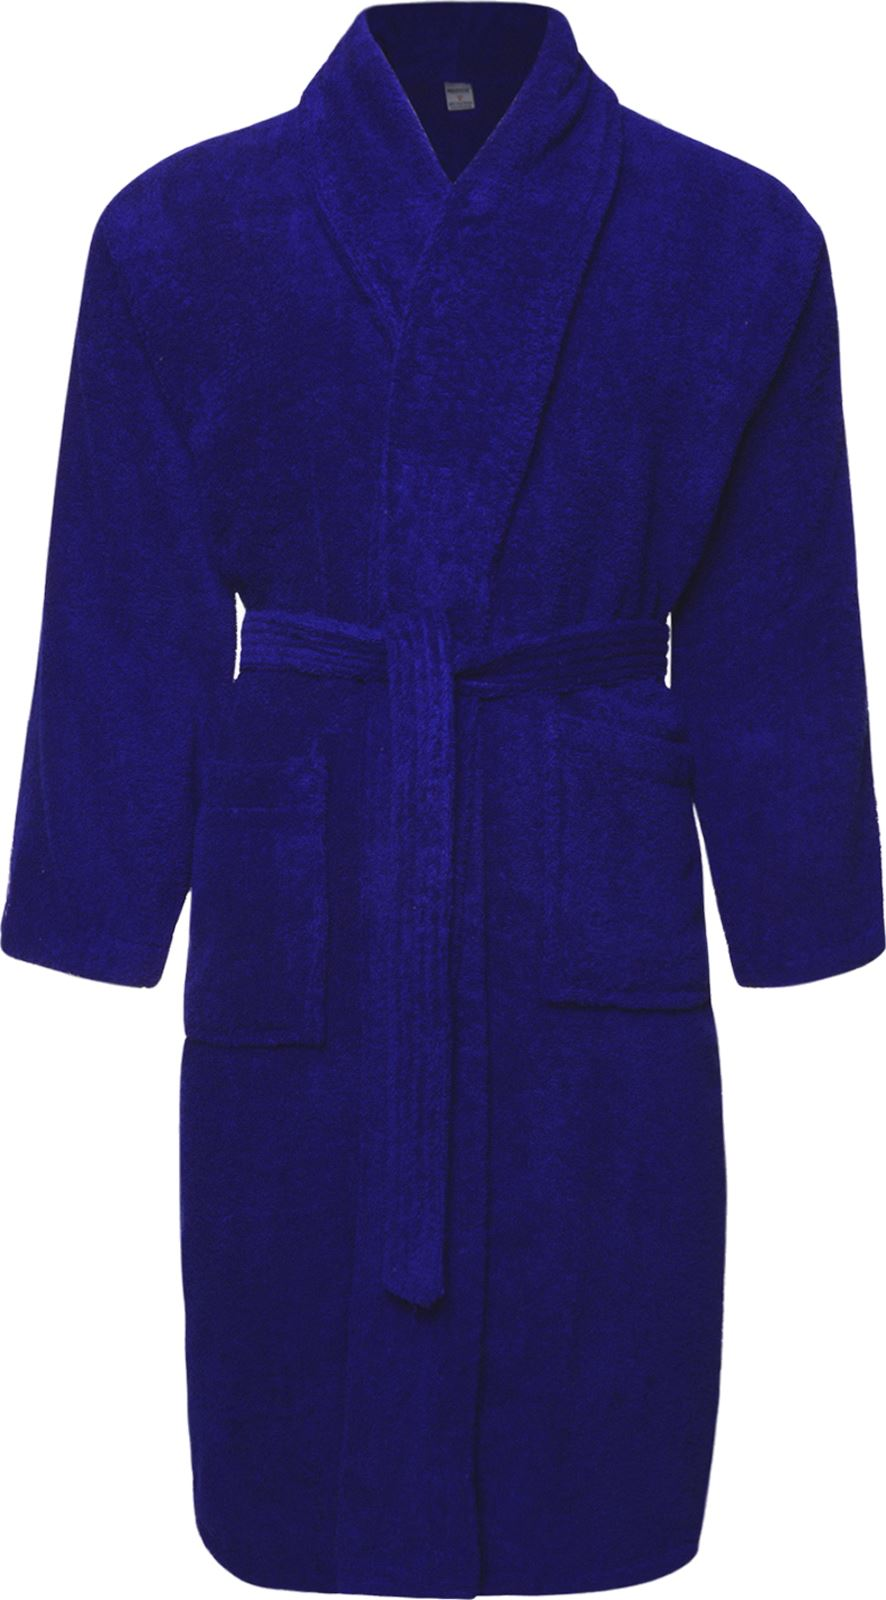 mens ladies royal blue 100 cotton terry towelling bathrobe dressing gown robe. Black Bedroom Furniture Sets. Home Design Ideas